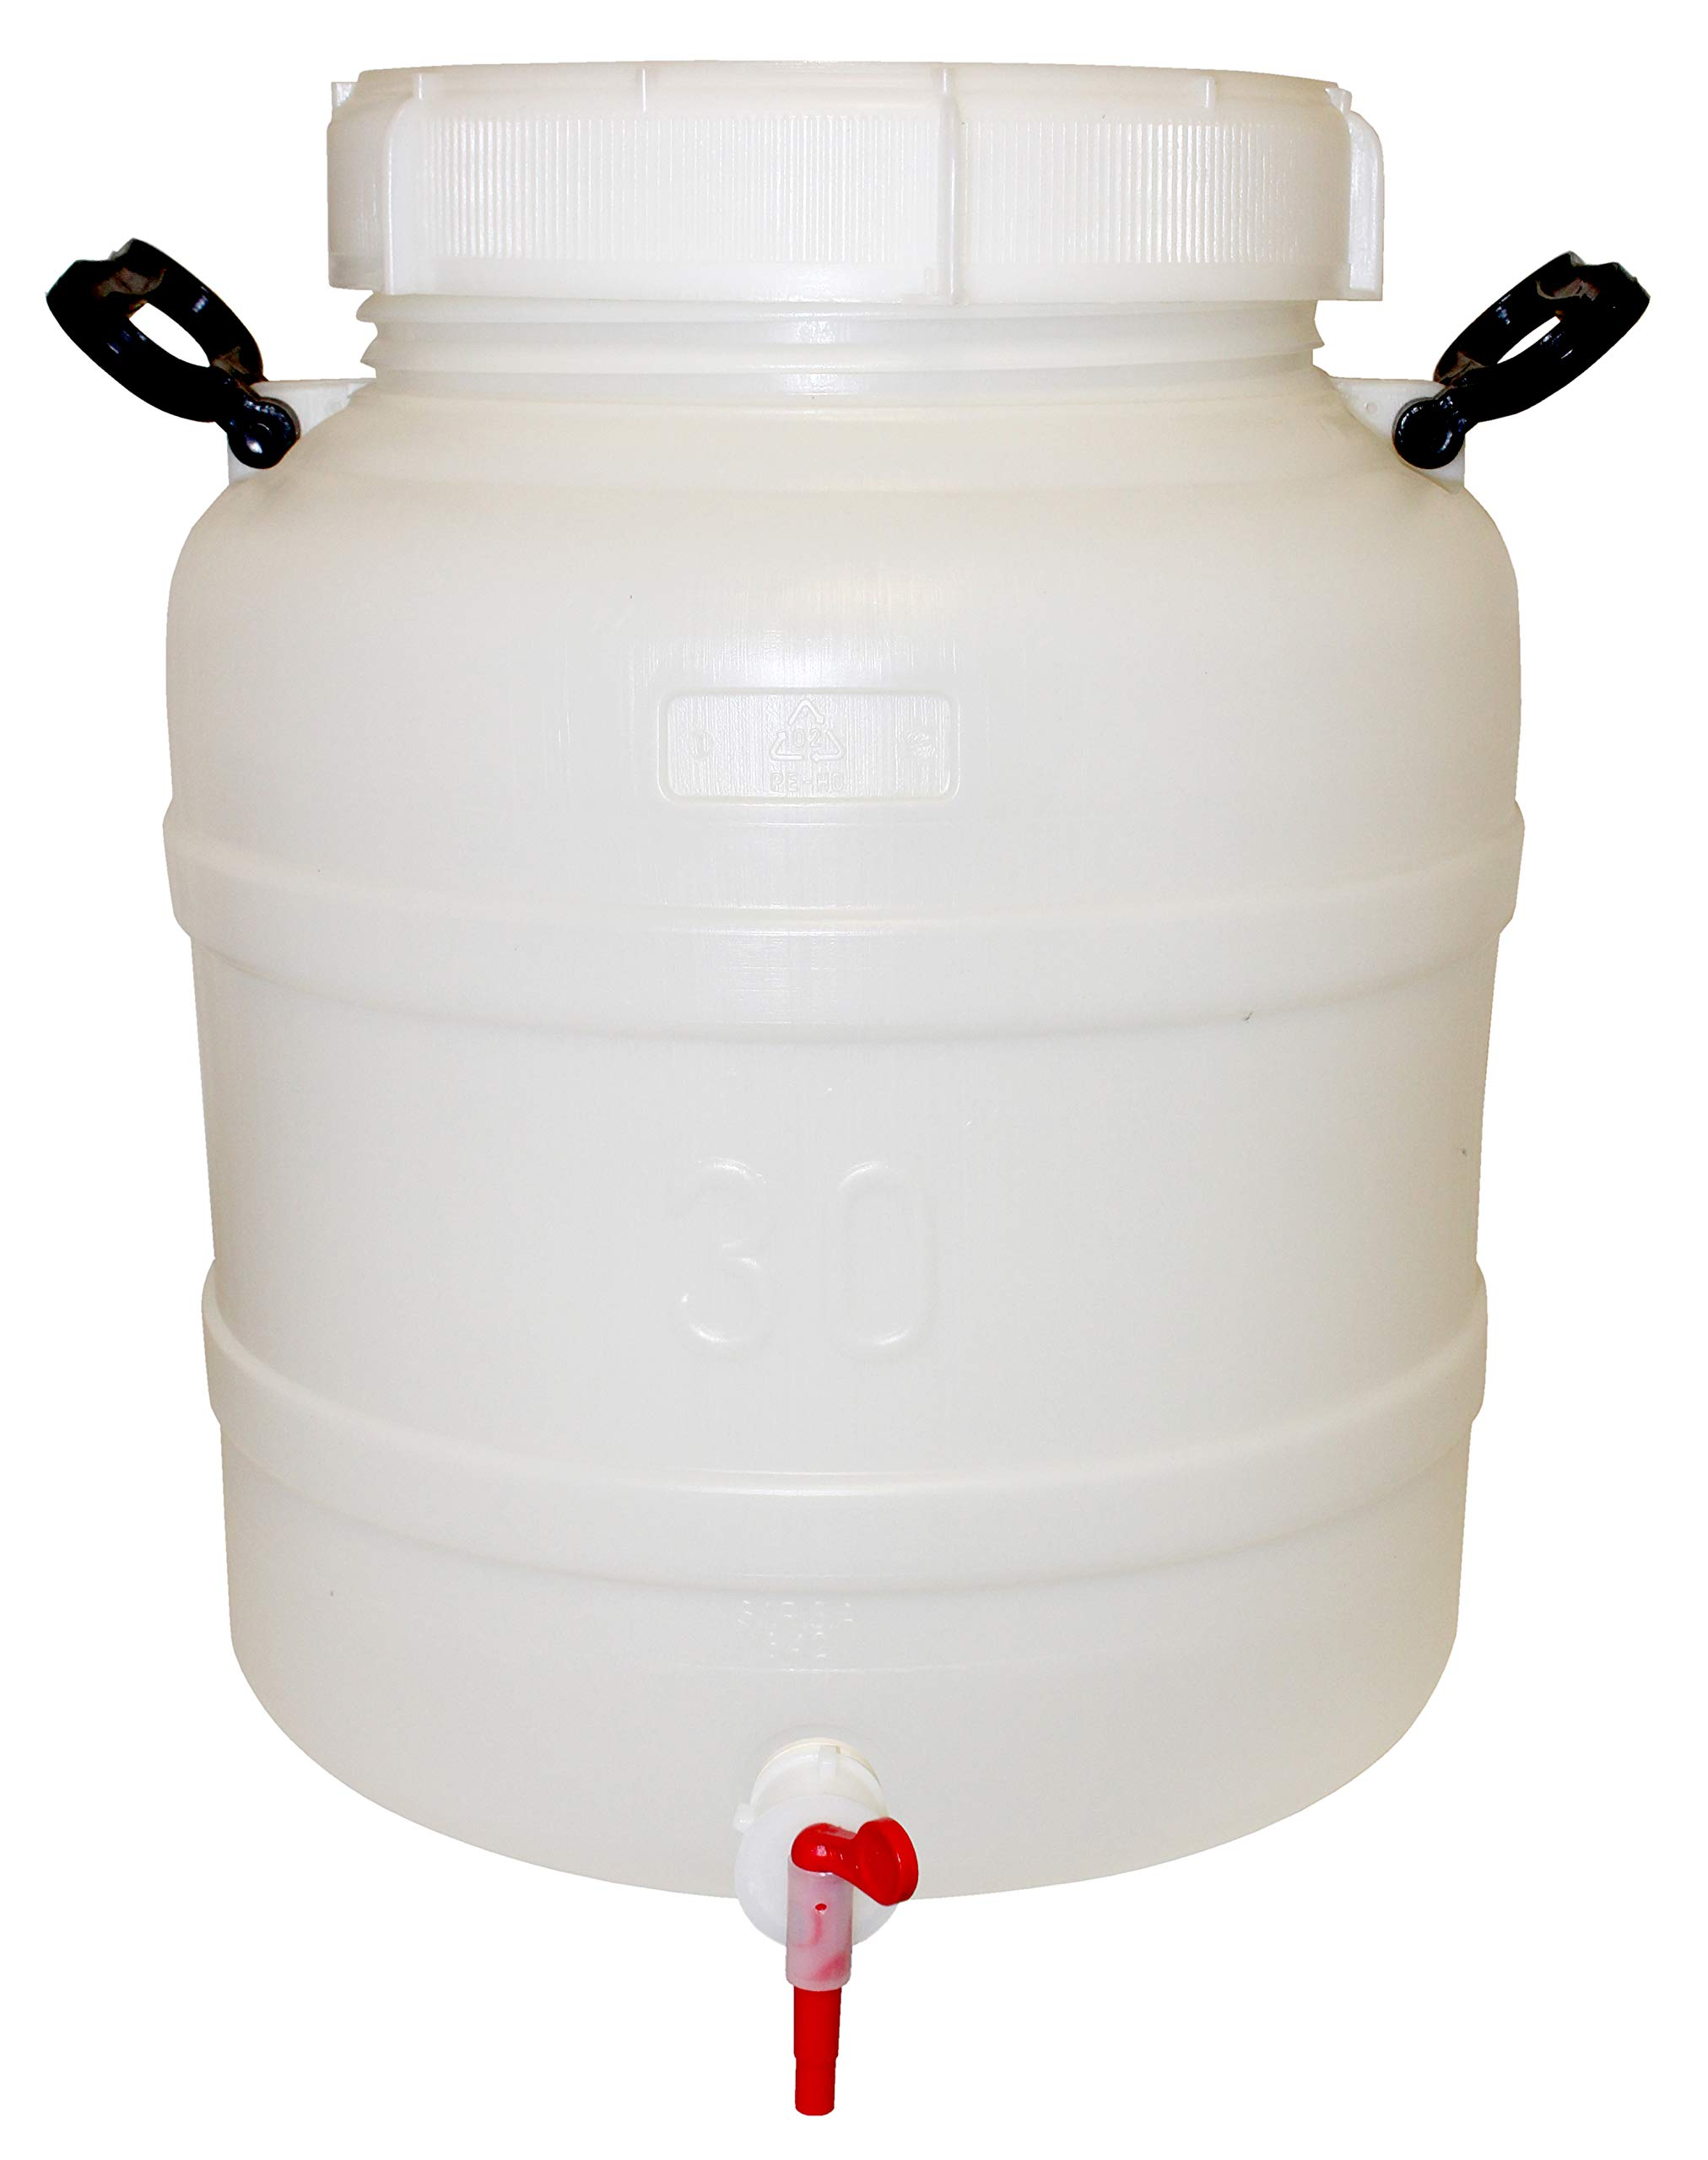 Home Brew Ohio Jungle Juice Party Container/Dispenser Portable 30 Liter (7.9 Gallons) With Spigot